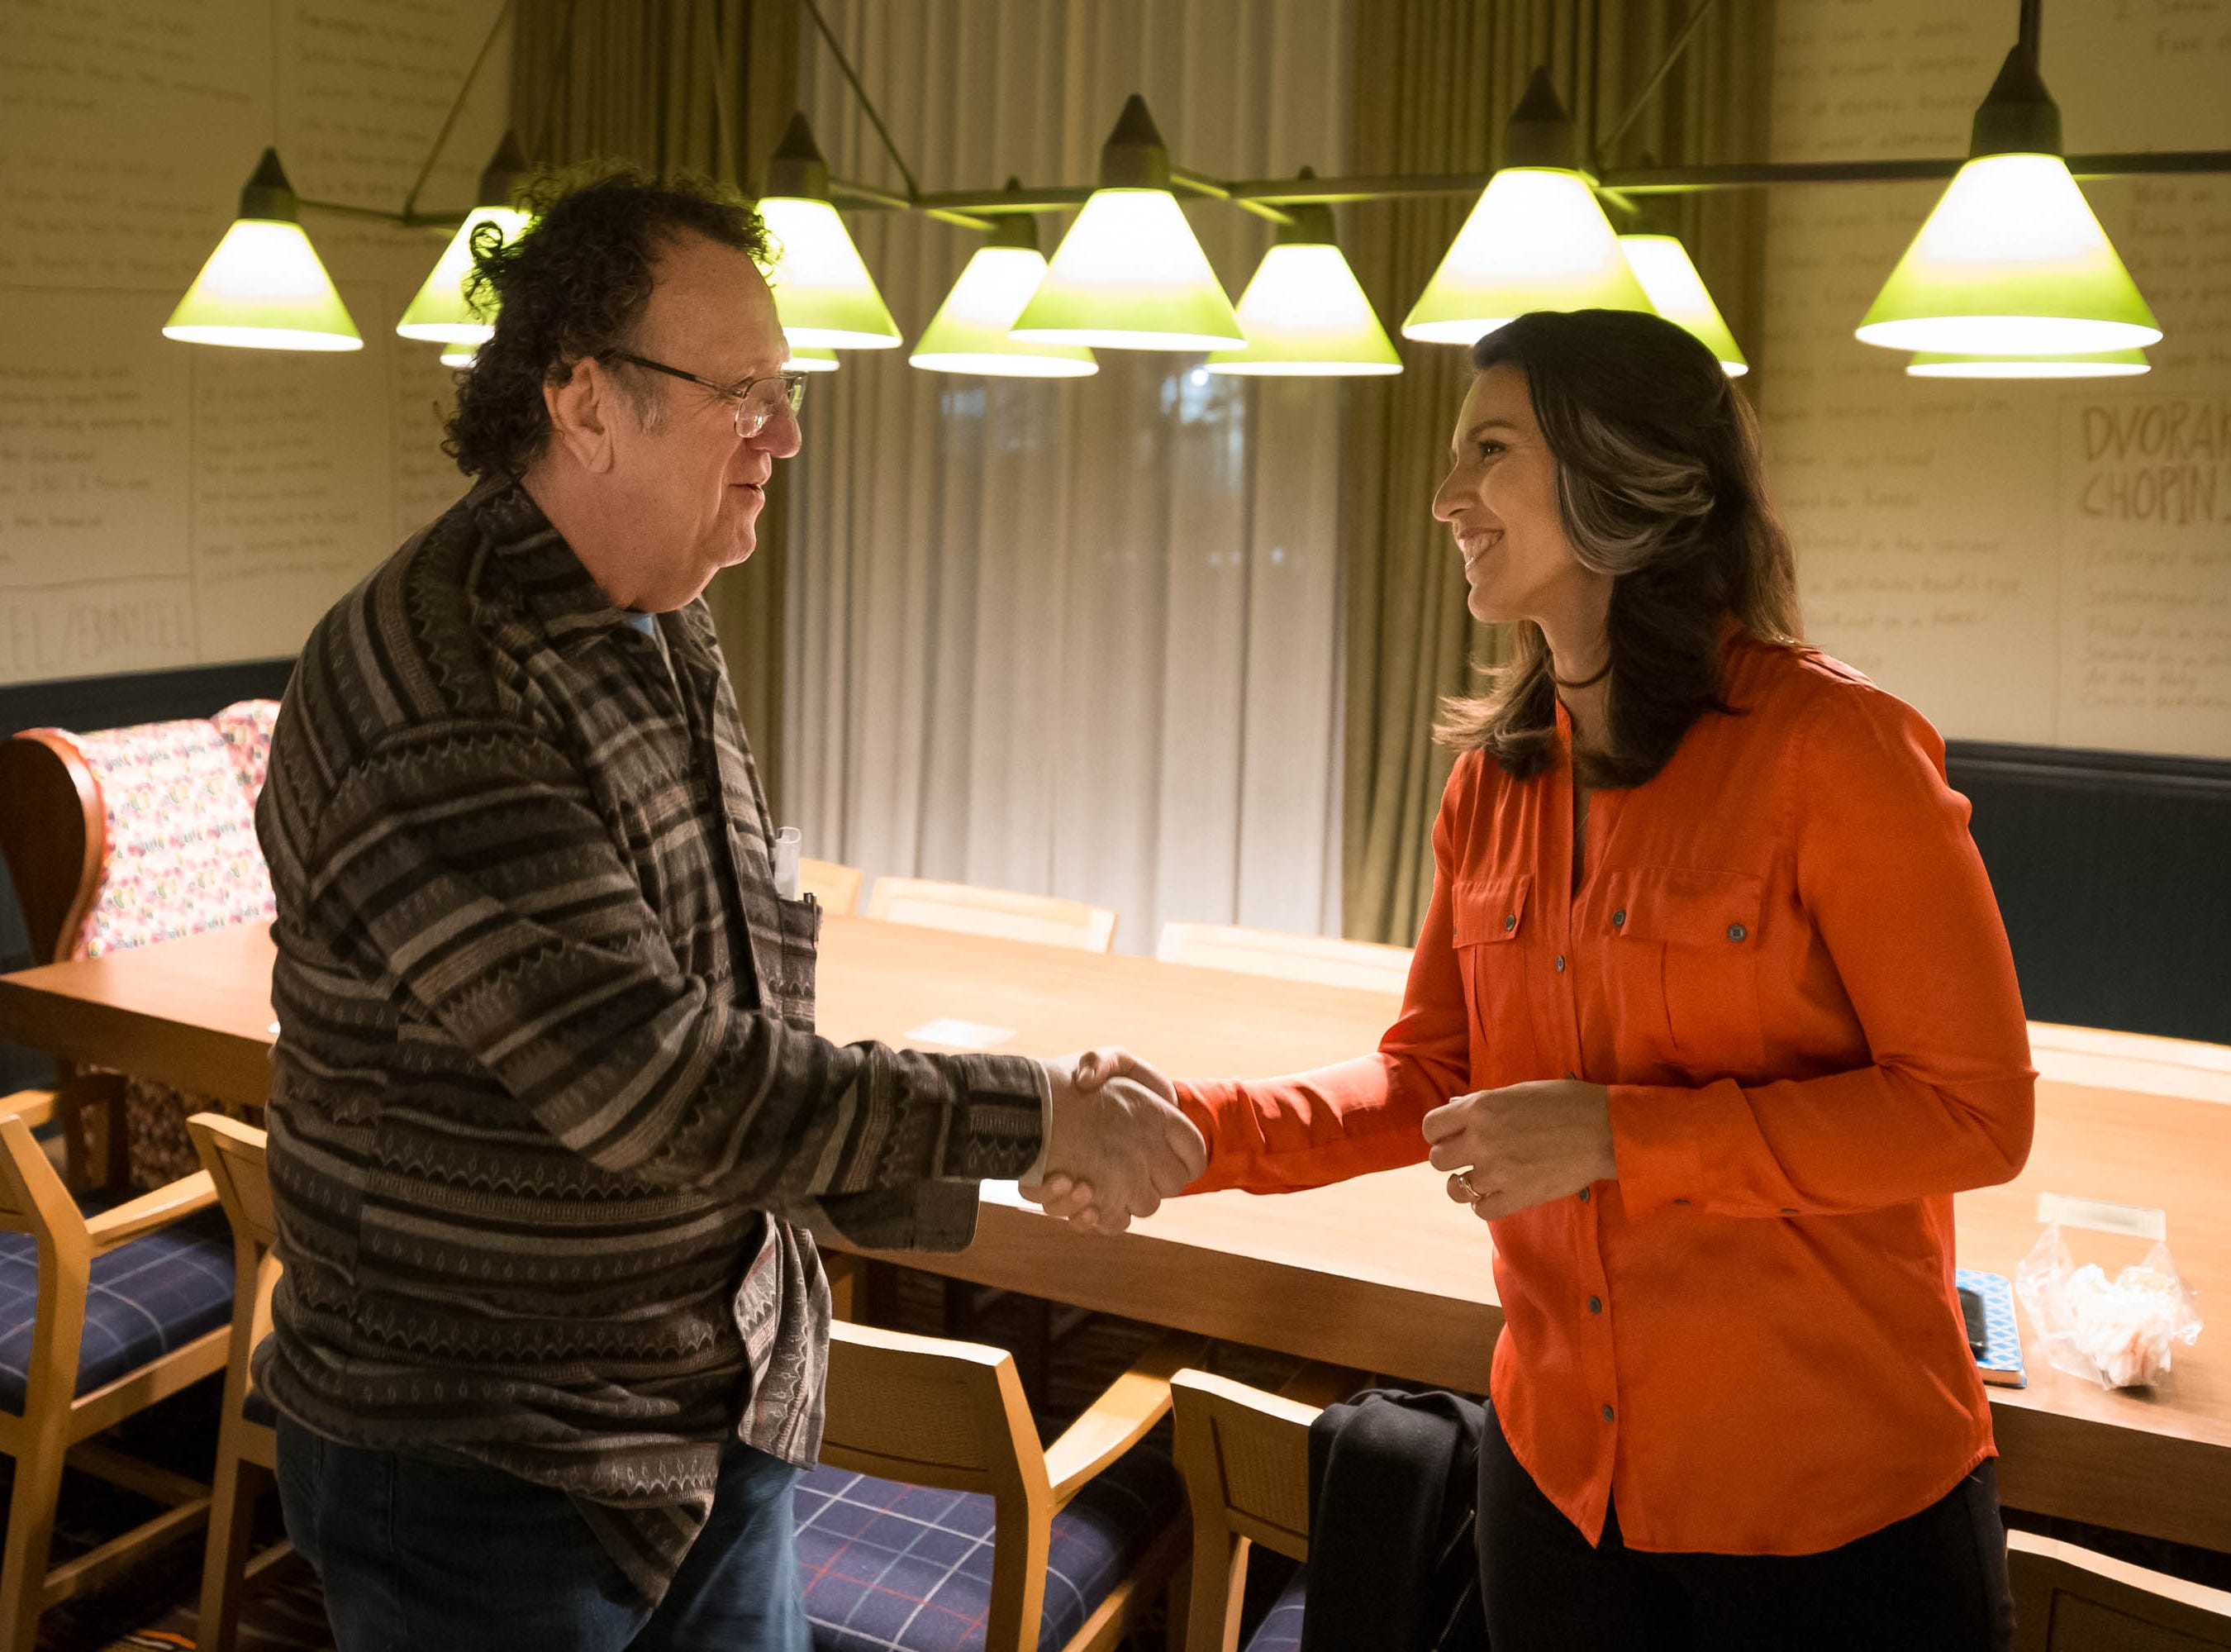 2020 Democratic presidential candidate Tulsi Gabbard, right, meets Bob Arbuckle of Iowa City in the lobby of the Graduate in Iowa City on Thursday, February 21, 2019.